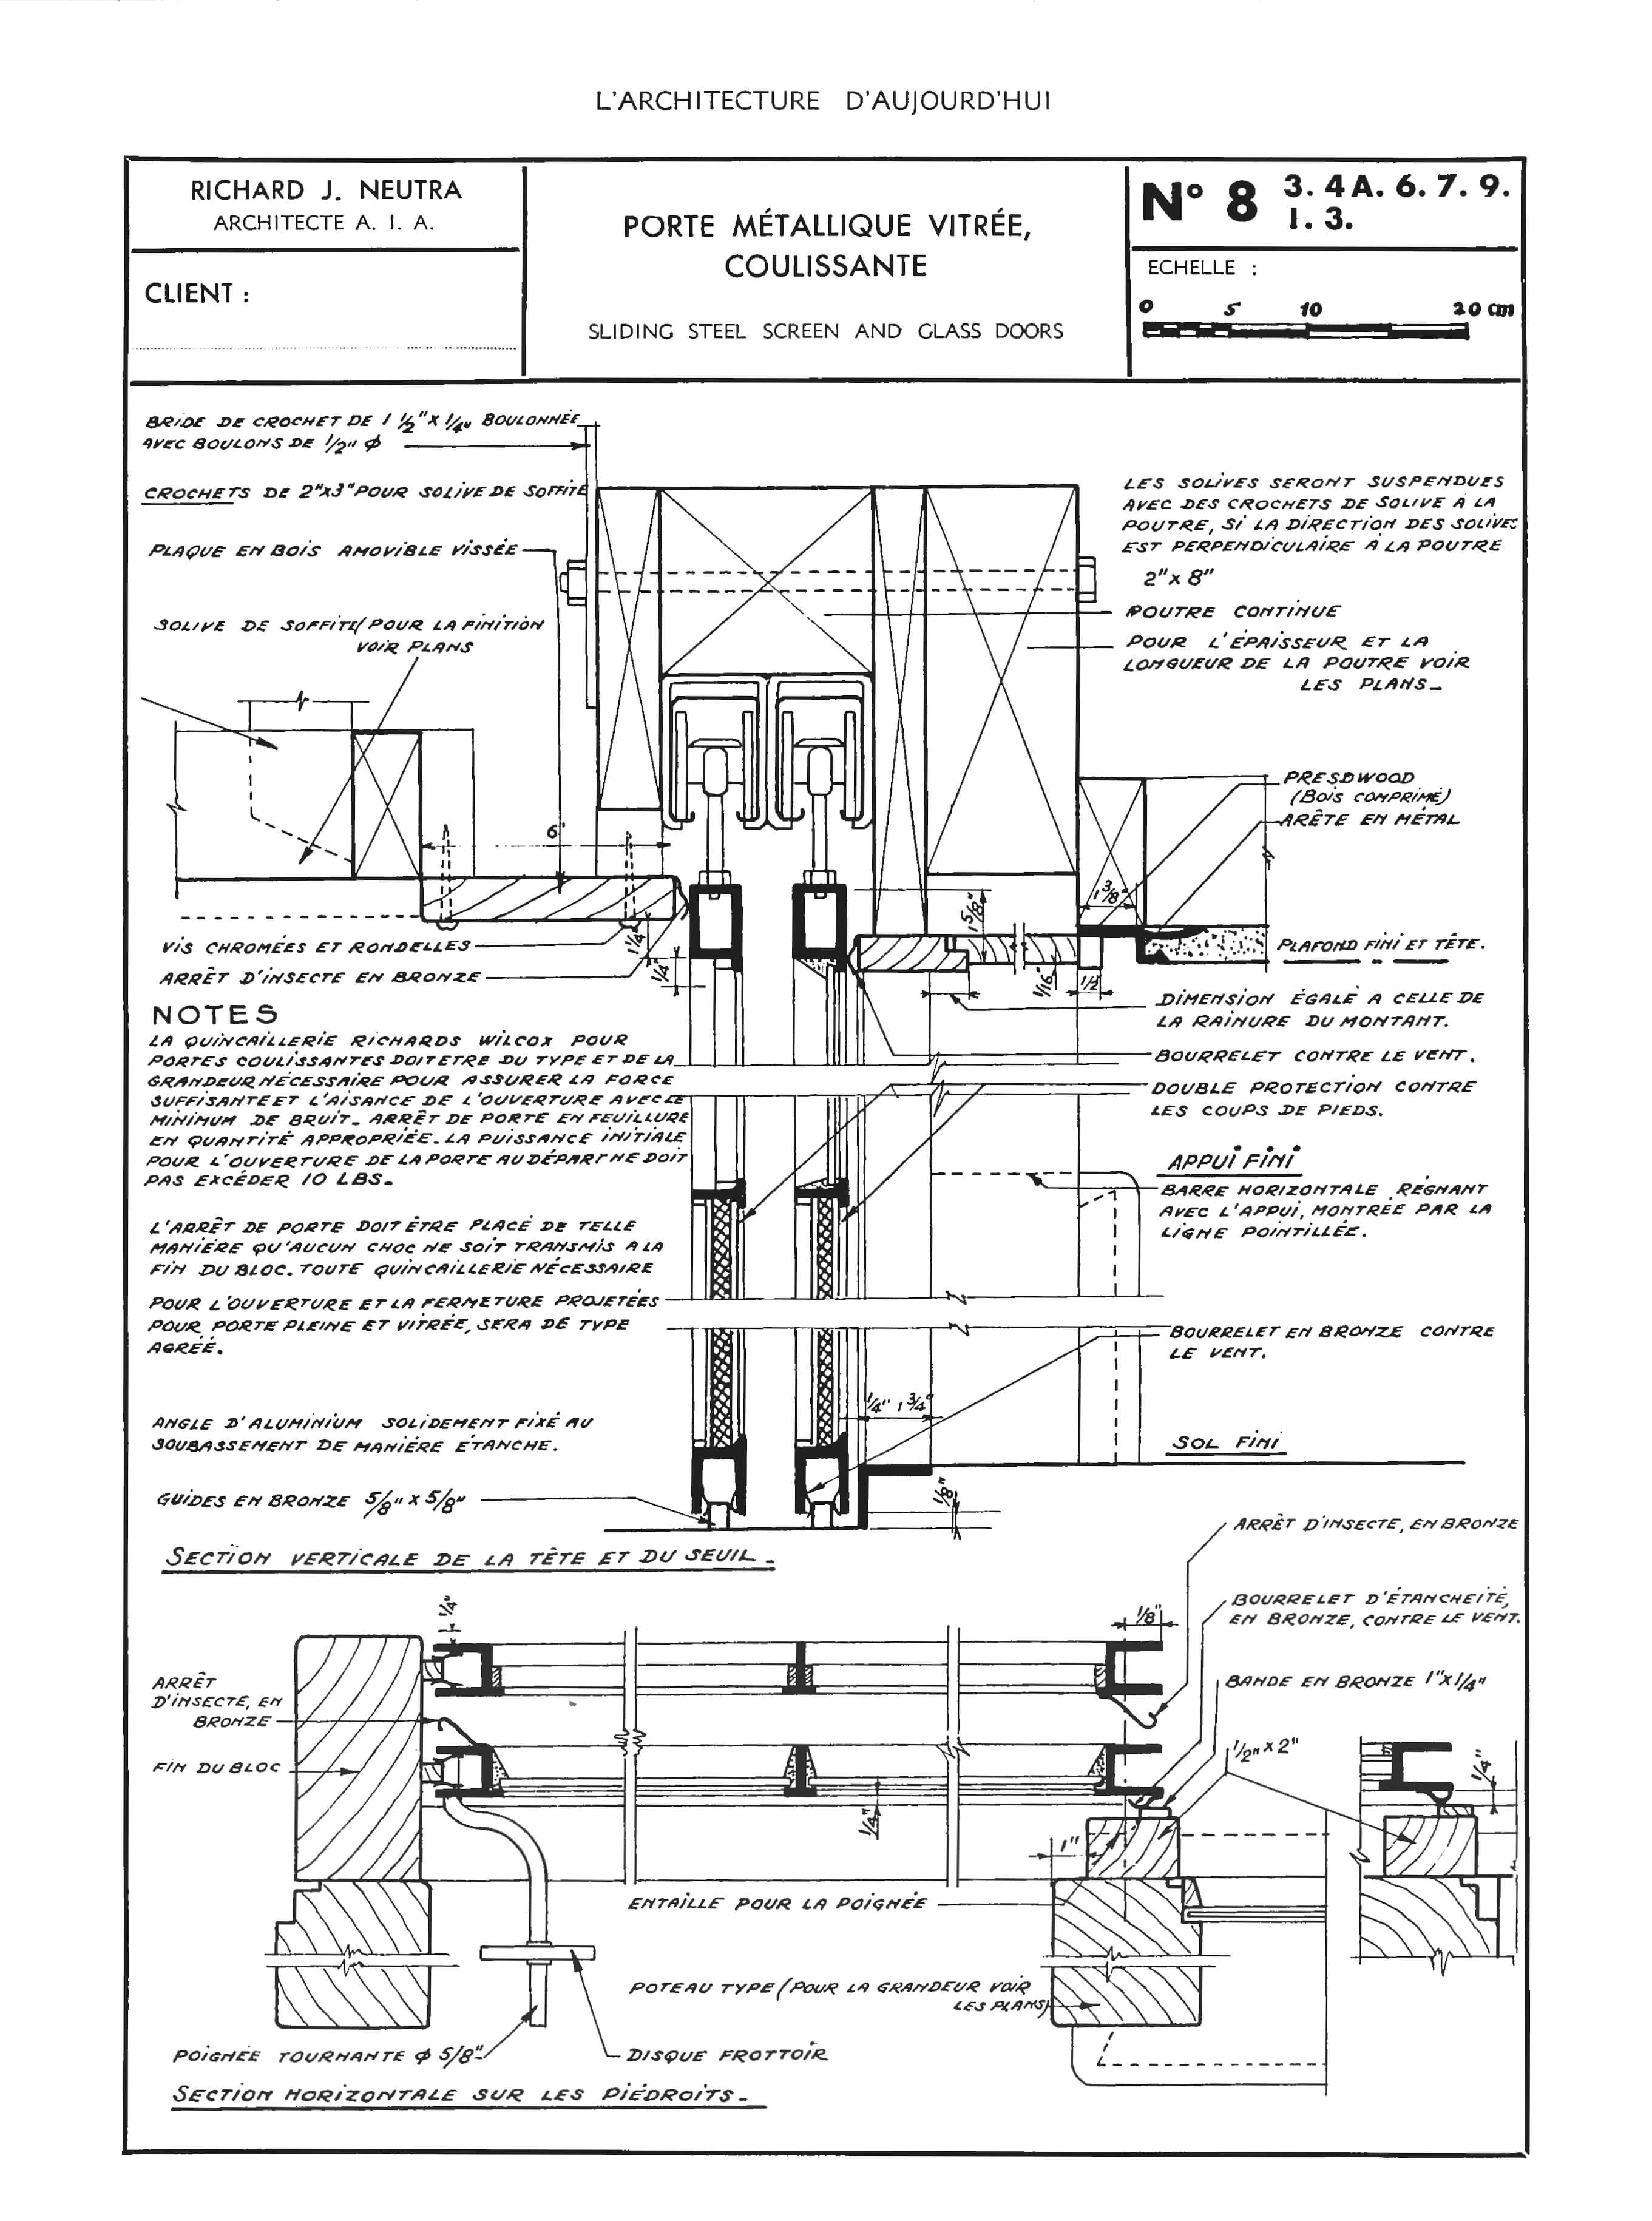 Technical Details Of Richard Neutra S Sliding Steel And Glass Doors Published In L Architecture D Aujourd Hui 6 Mai Juin 1946